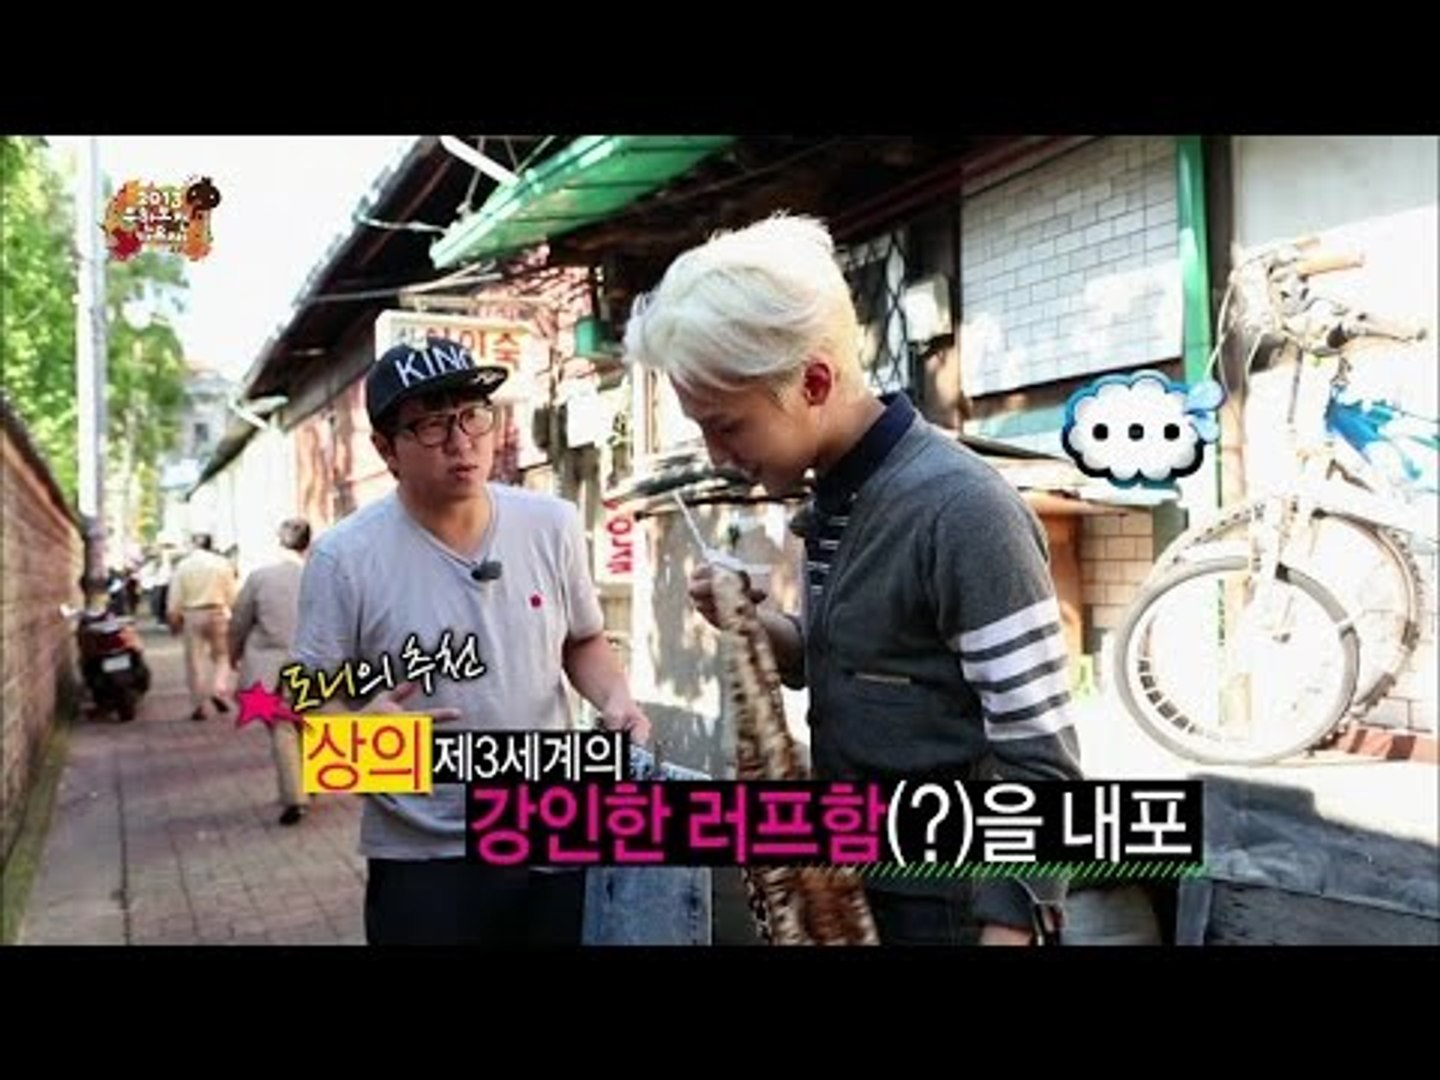 【TVPP】Jeong Hyeong Don - Filming 'Crooked' M/V with G-Dragon, '삐딱하게' 뮤직비디오  촬영 @ Infinite Challenge